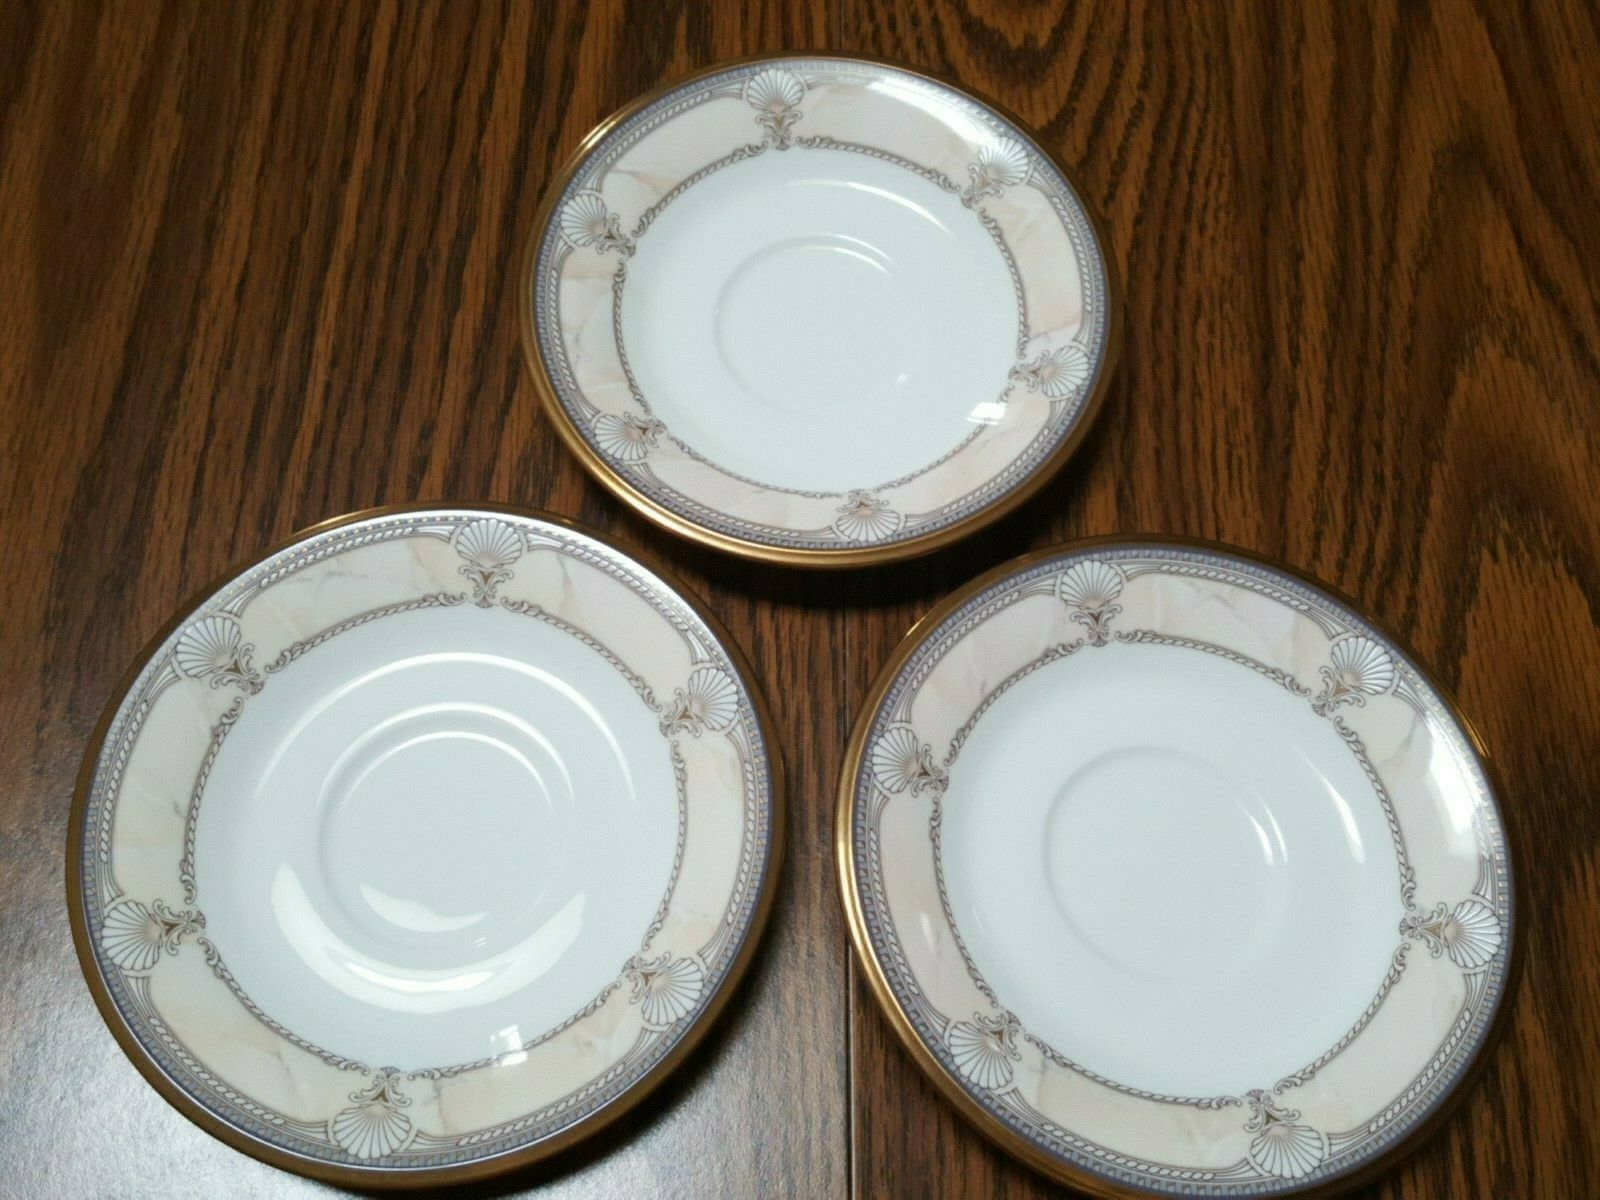 3 Noritake Pacific Majesty 9771 Bone China Japan Saucers Only No Cup Pink Shell - $12.95